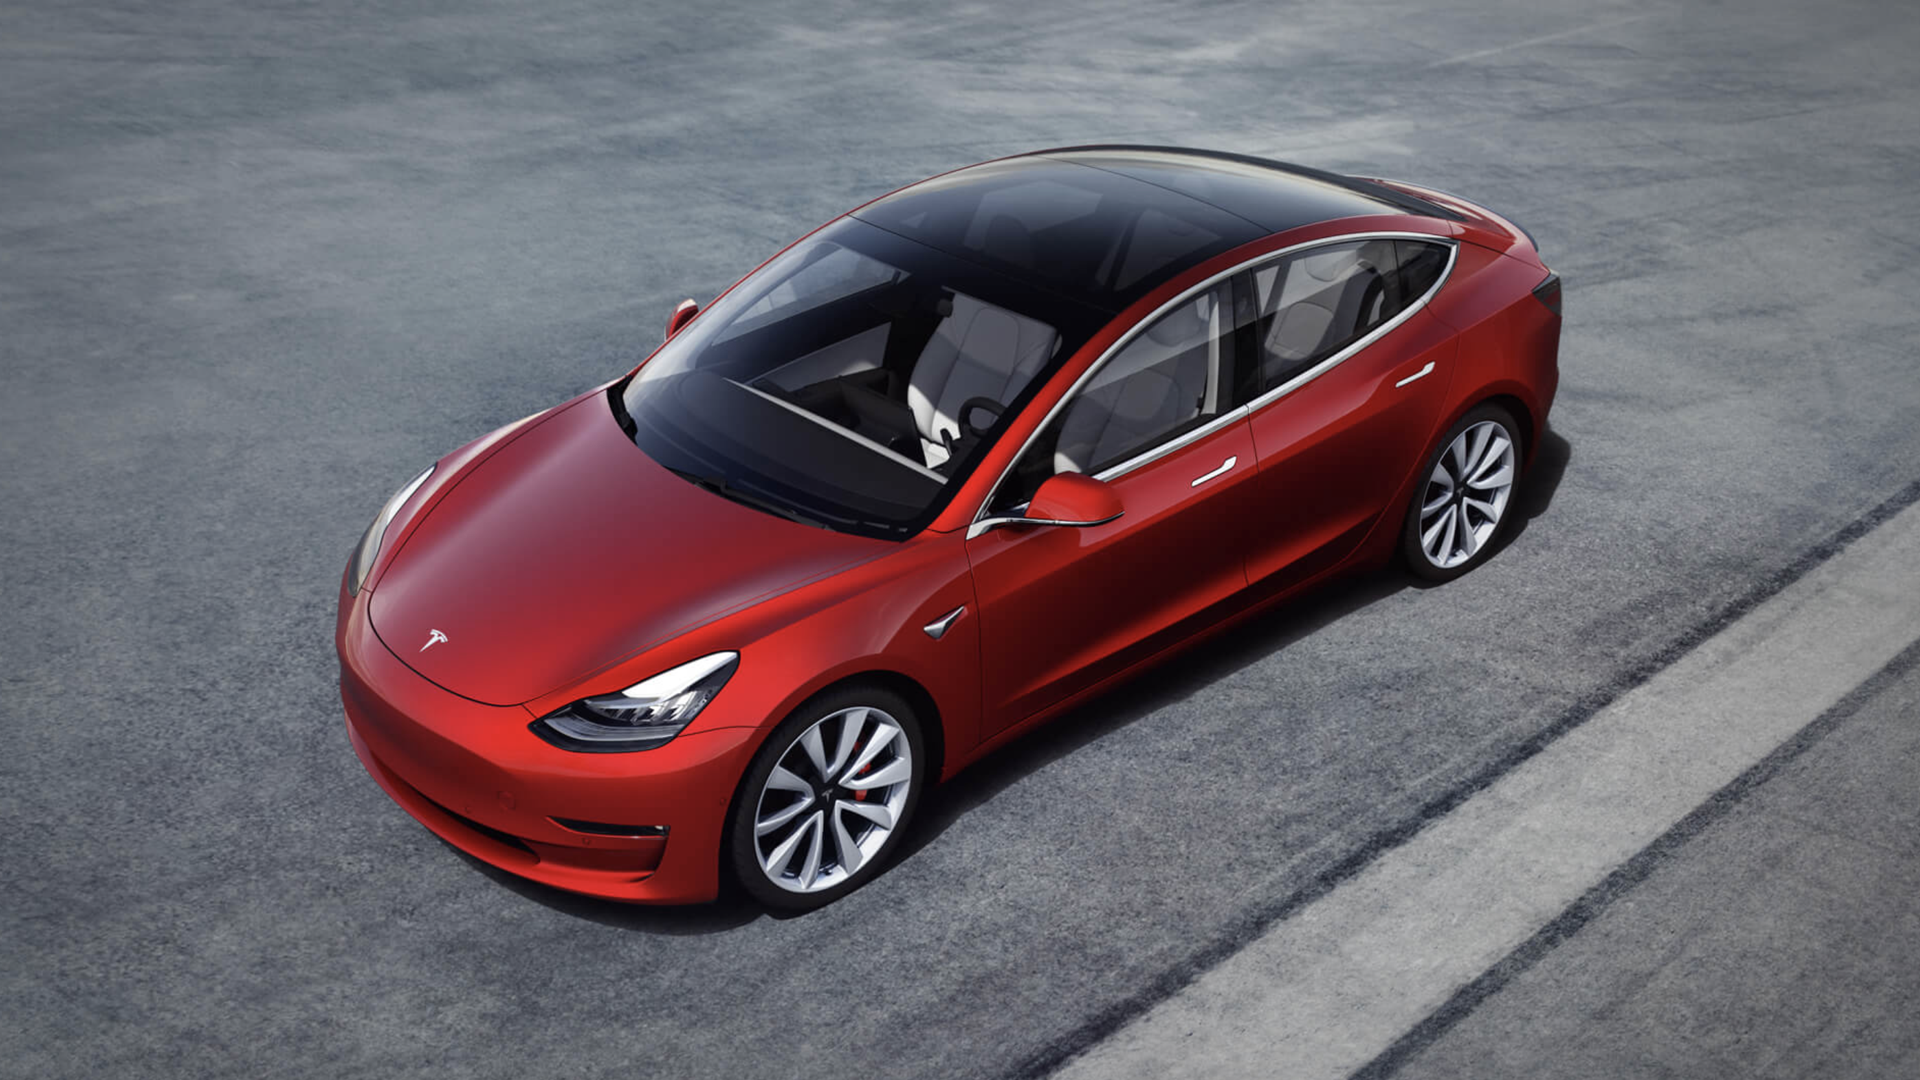 THE $35,000 MODEL 3 IS HERE